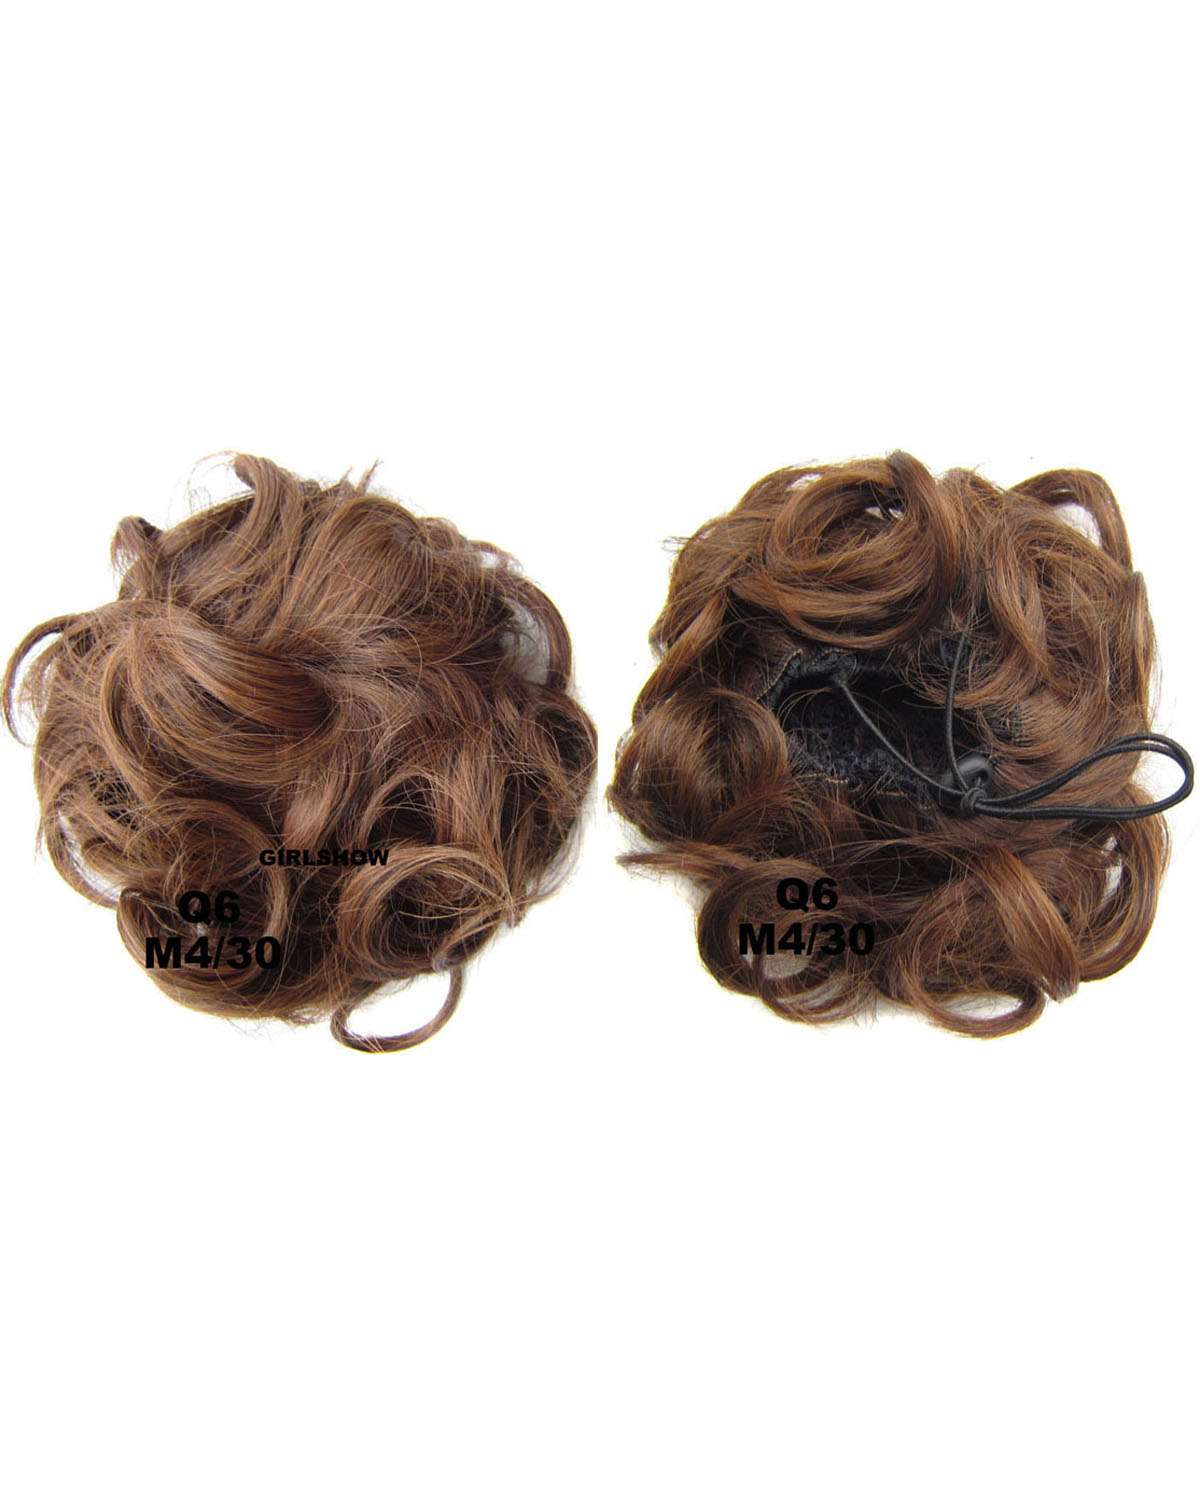 Ladies Fresh and High Quality Curly and Short Hair Buns Drawstring Synthetic Hair Extension Bride Scrunchies M4/30